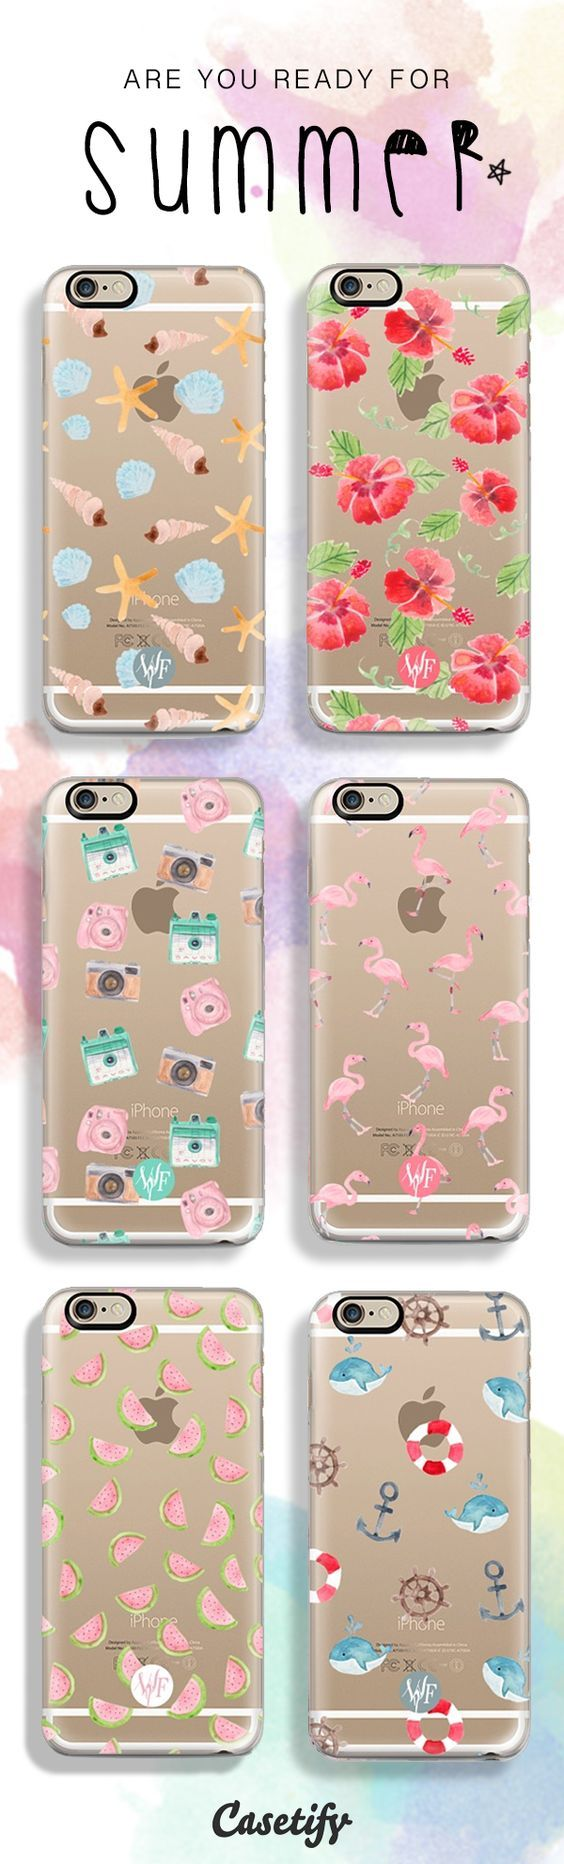 some cute phone case collections for the summer